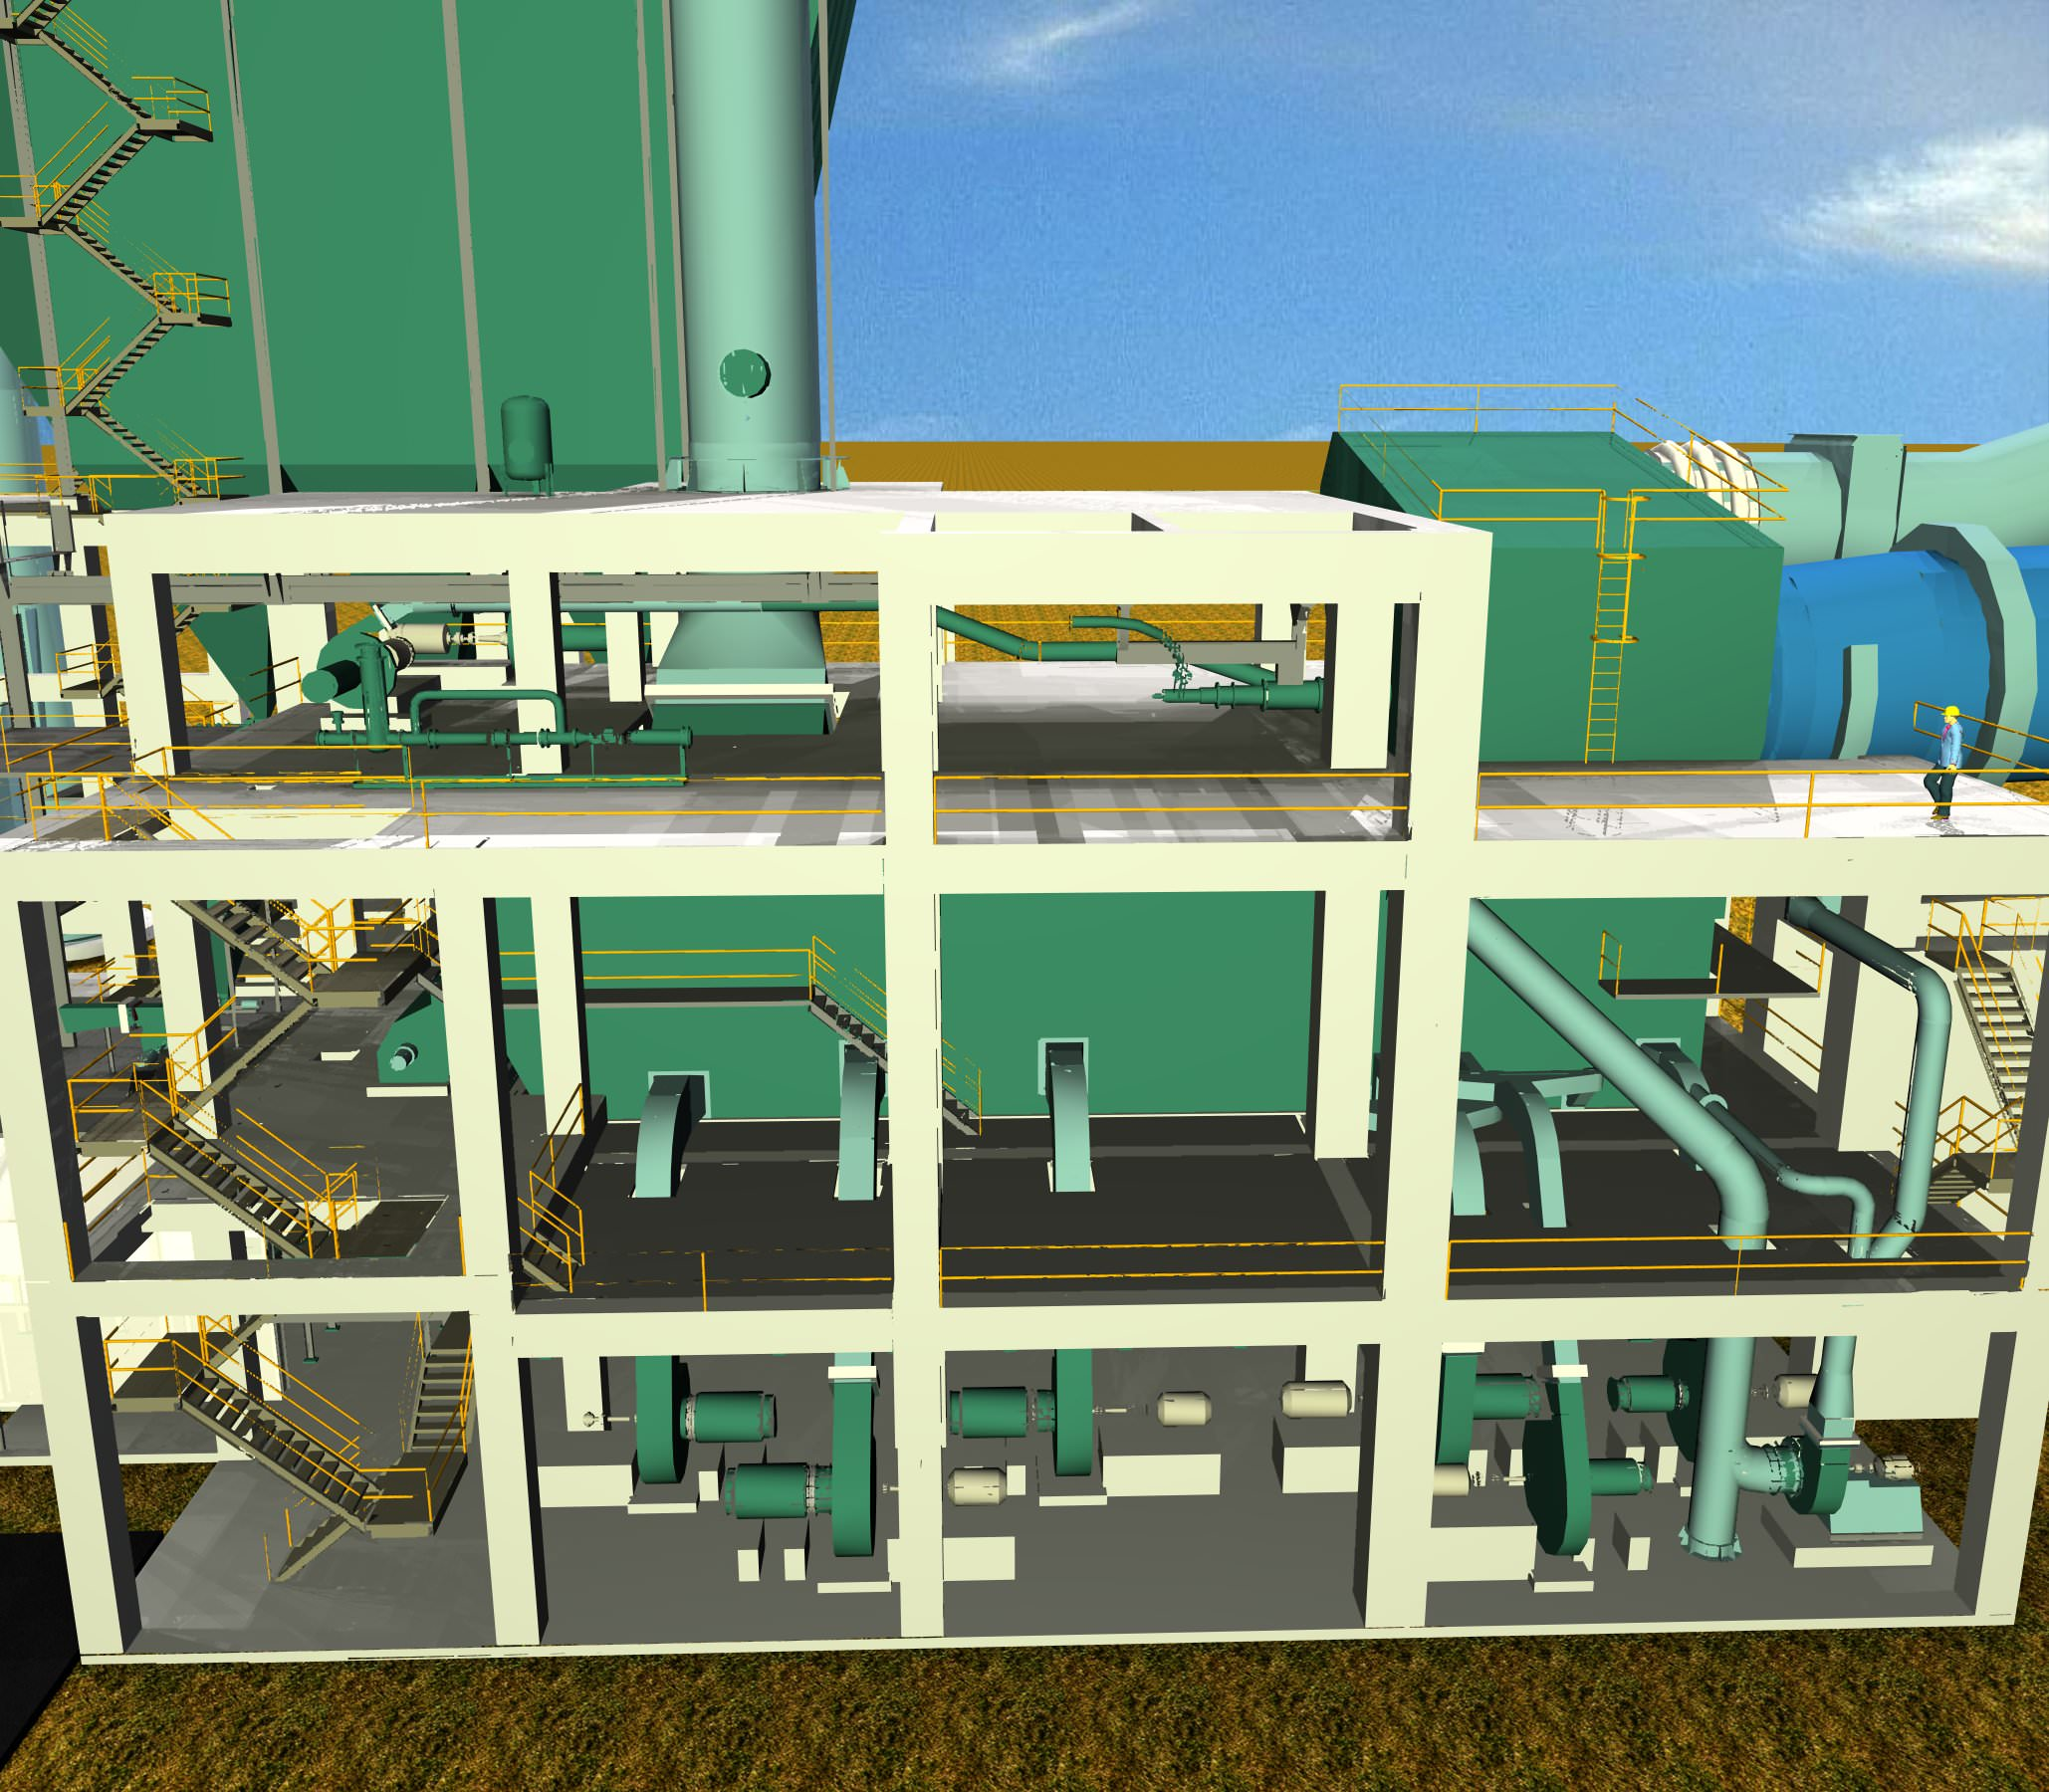 Flash Cement Plant In Cooler : Cooler electrostatic precipitator cement free d